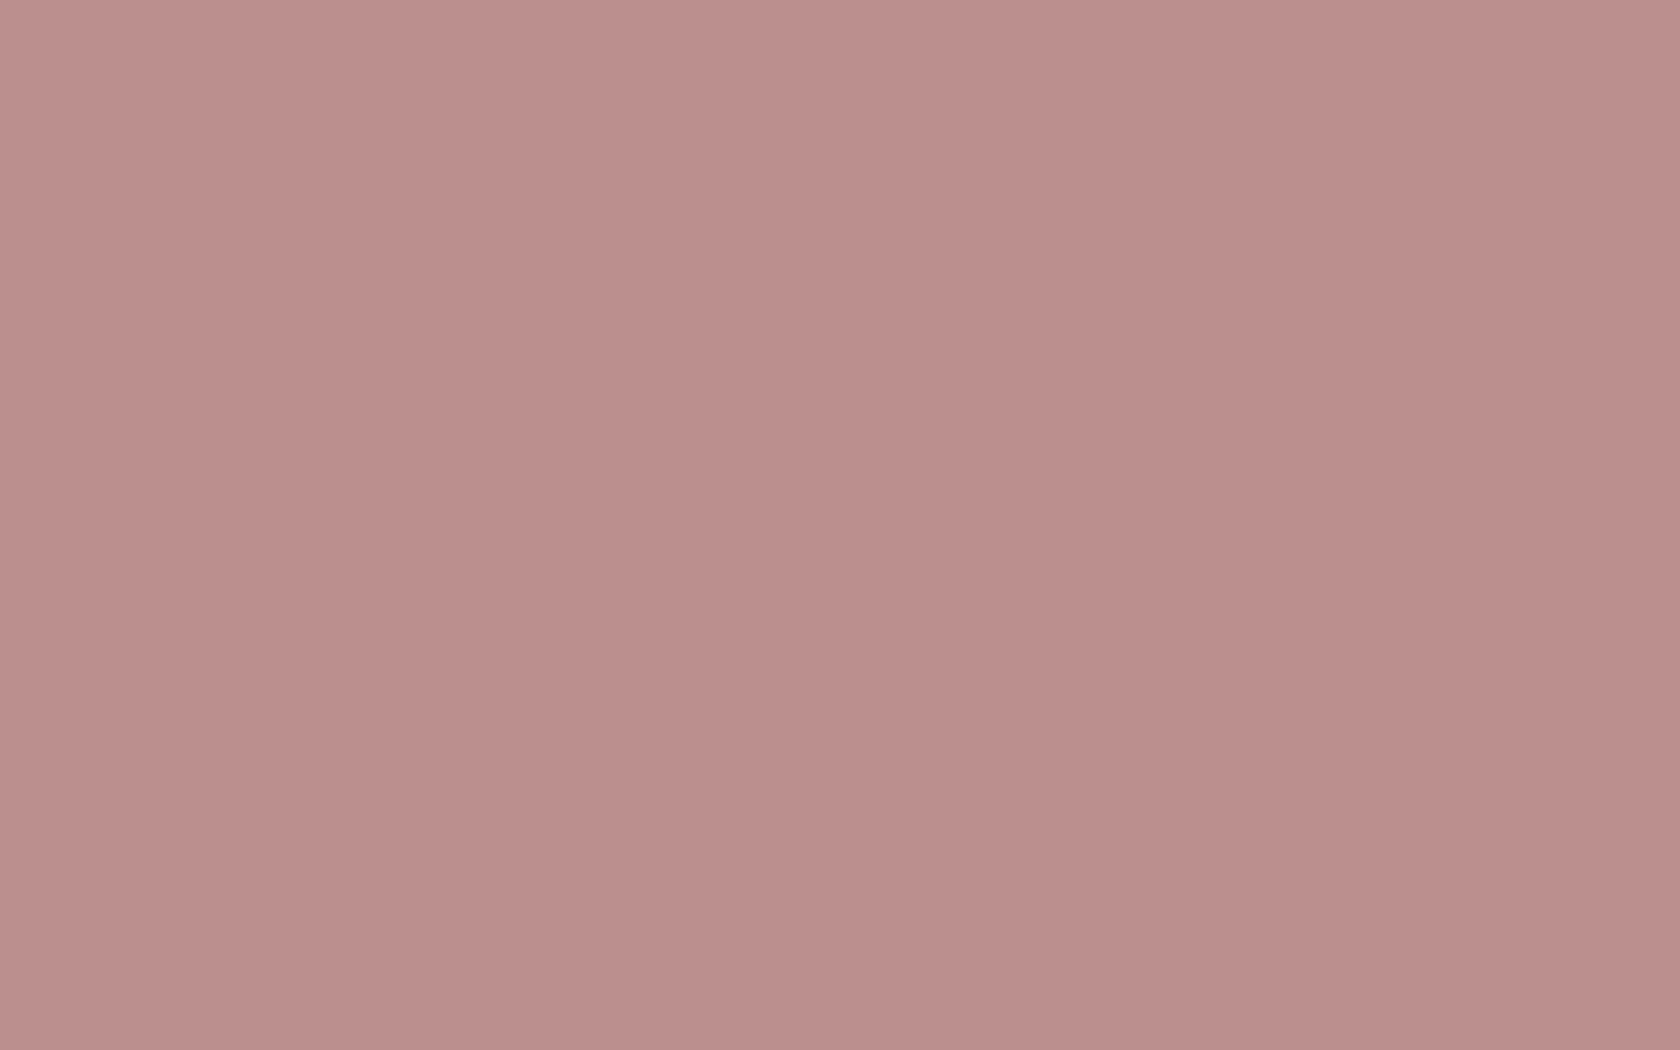 1680x1050 Rosy Brown Solid Color Background